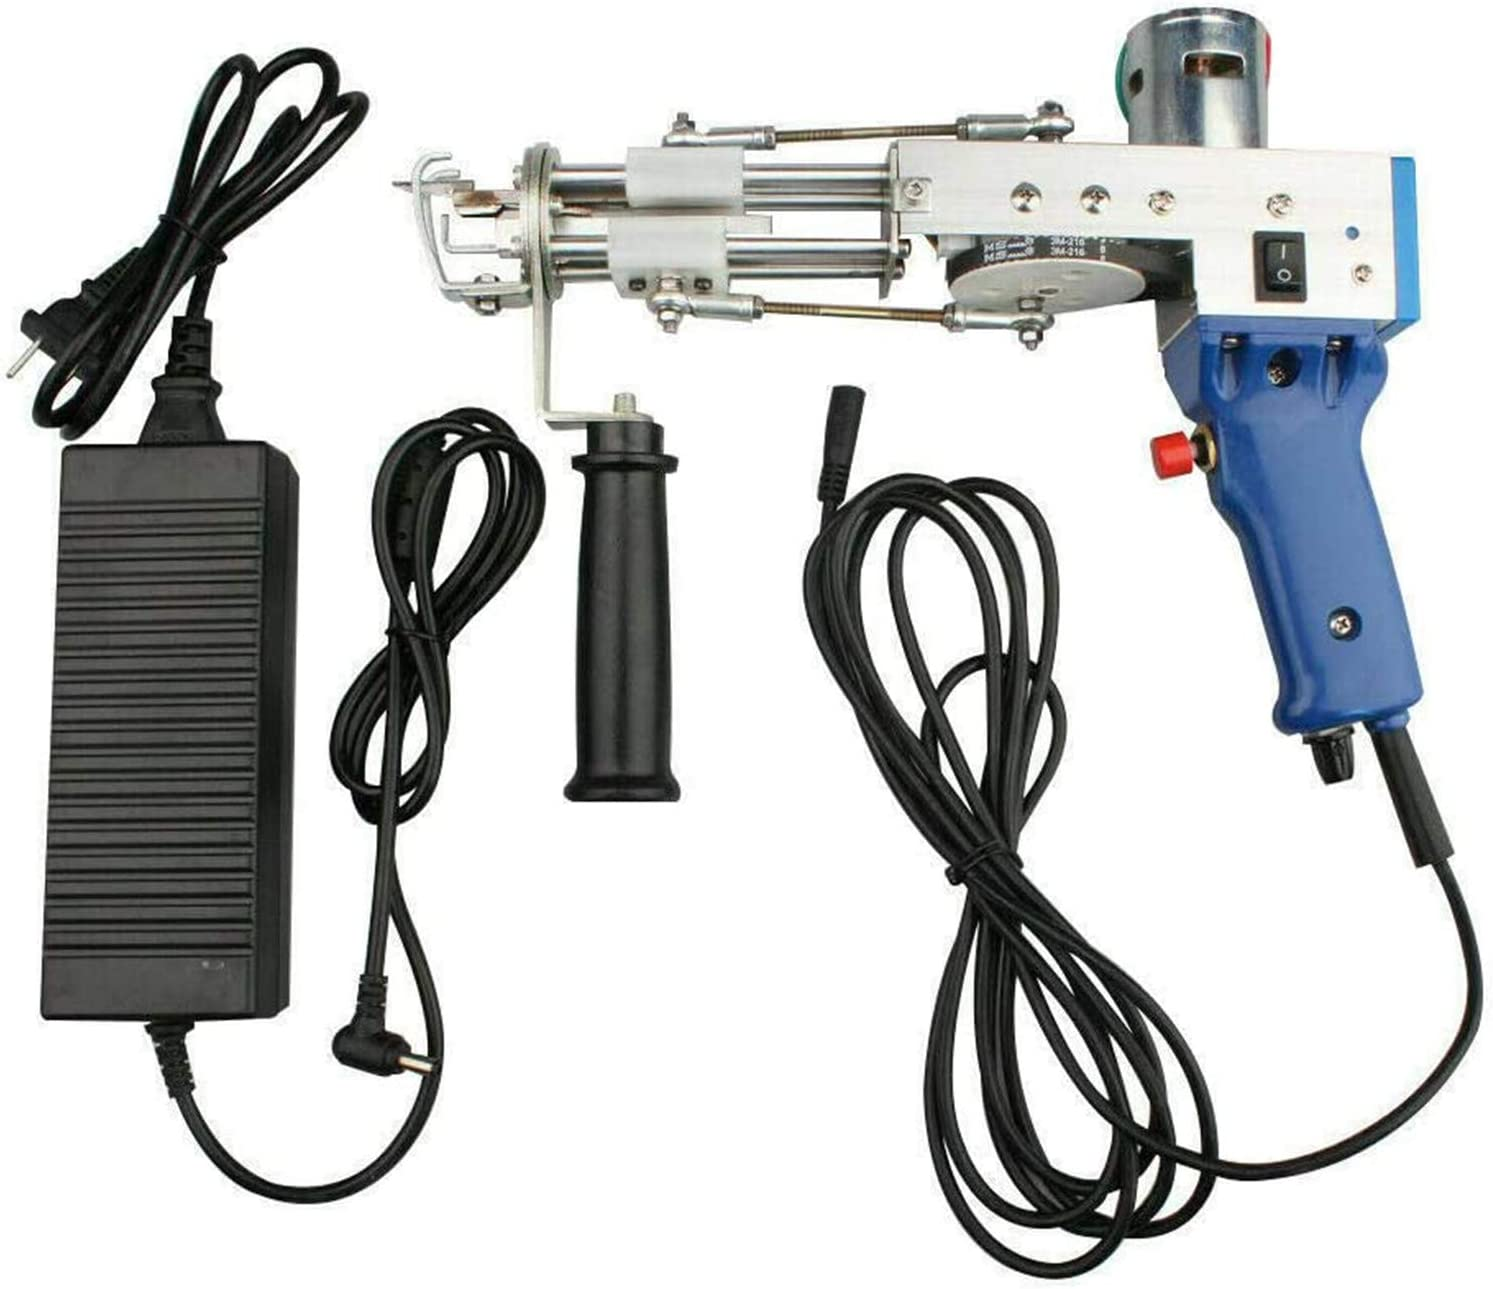 XYW Cut Pile ElectricTufting Gun Rug Industri Carpet Tufting Luxury Special price for a limited time